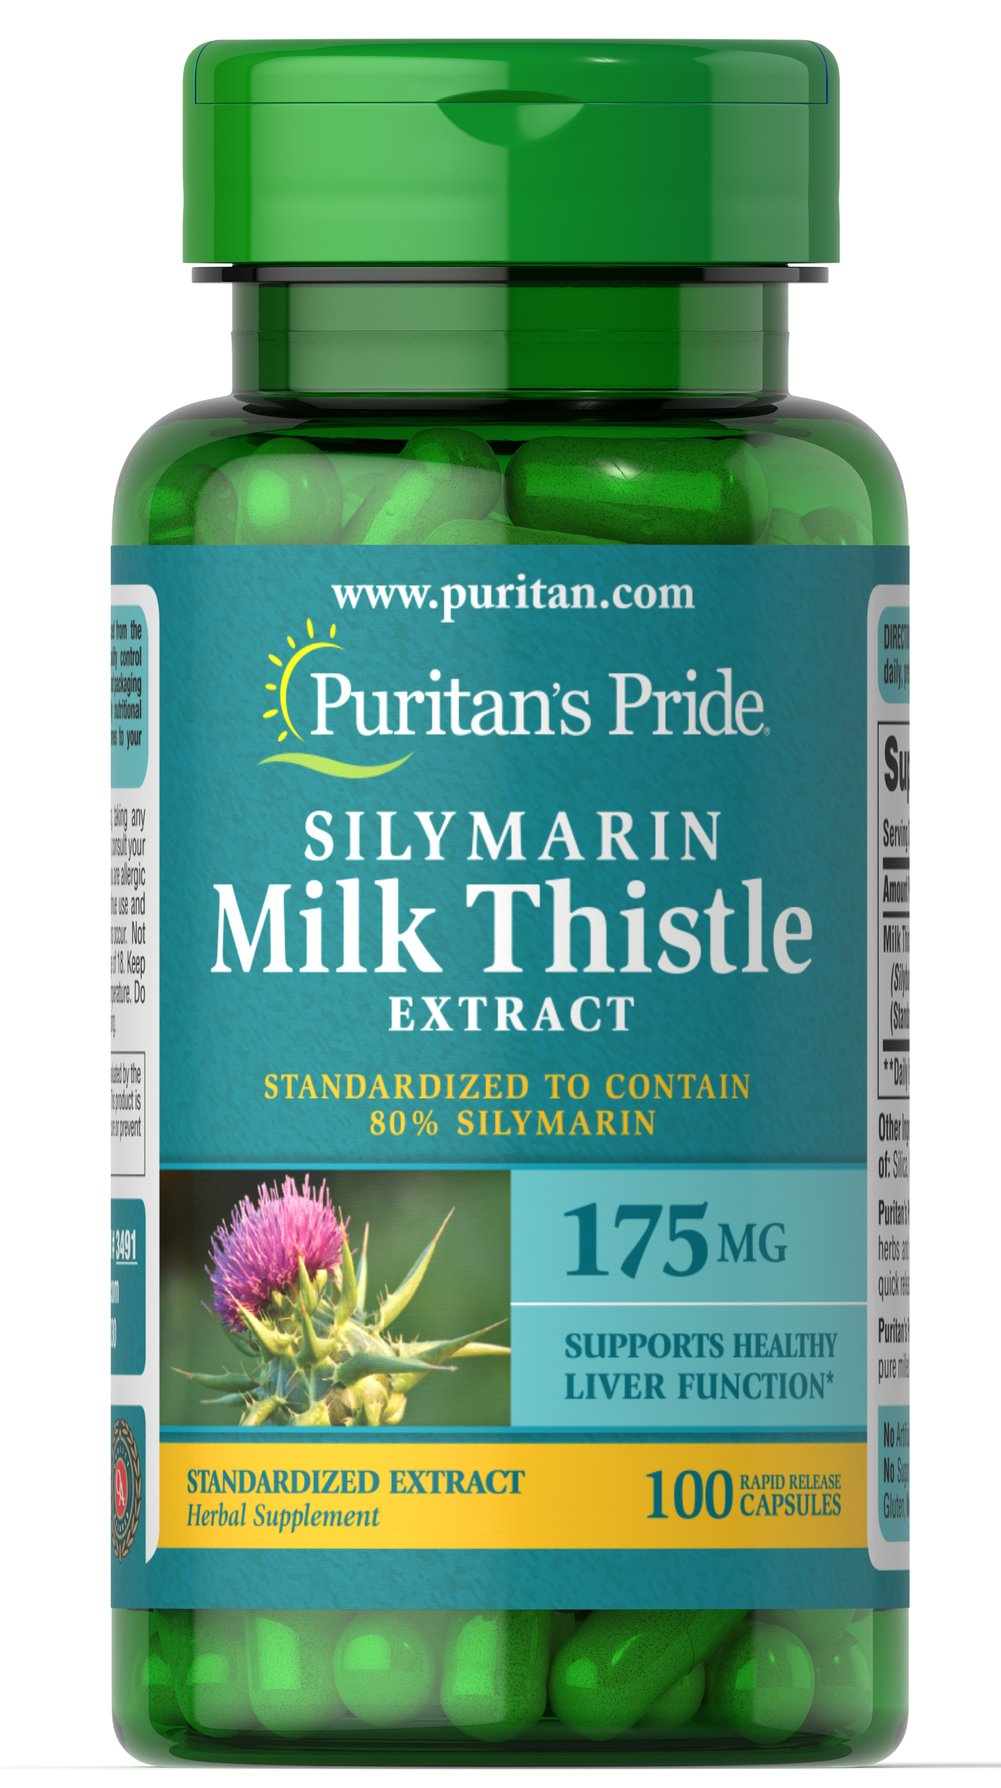 Milk Thistle Standardized 175 mg (Silymarin) <p>The exceptional benefits of Milk Thistle are due to its powerful antioxidant properties, which help to optimize health and well being.**</p><p>Puritan's Pride's Guarantee: We use only the finest quality herbs and spices. Each is screened and finely milled for quick release.<br /></p><p>Capsules may also be opened and prepared as a tea.</p> 100 Capsules 175 mg $11.99